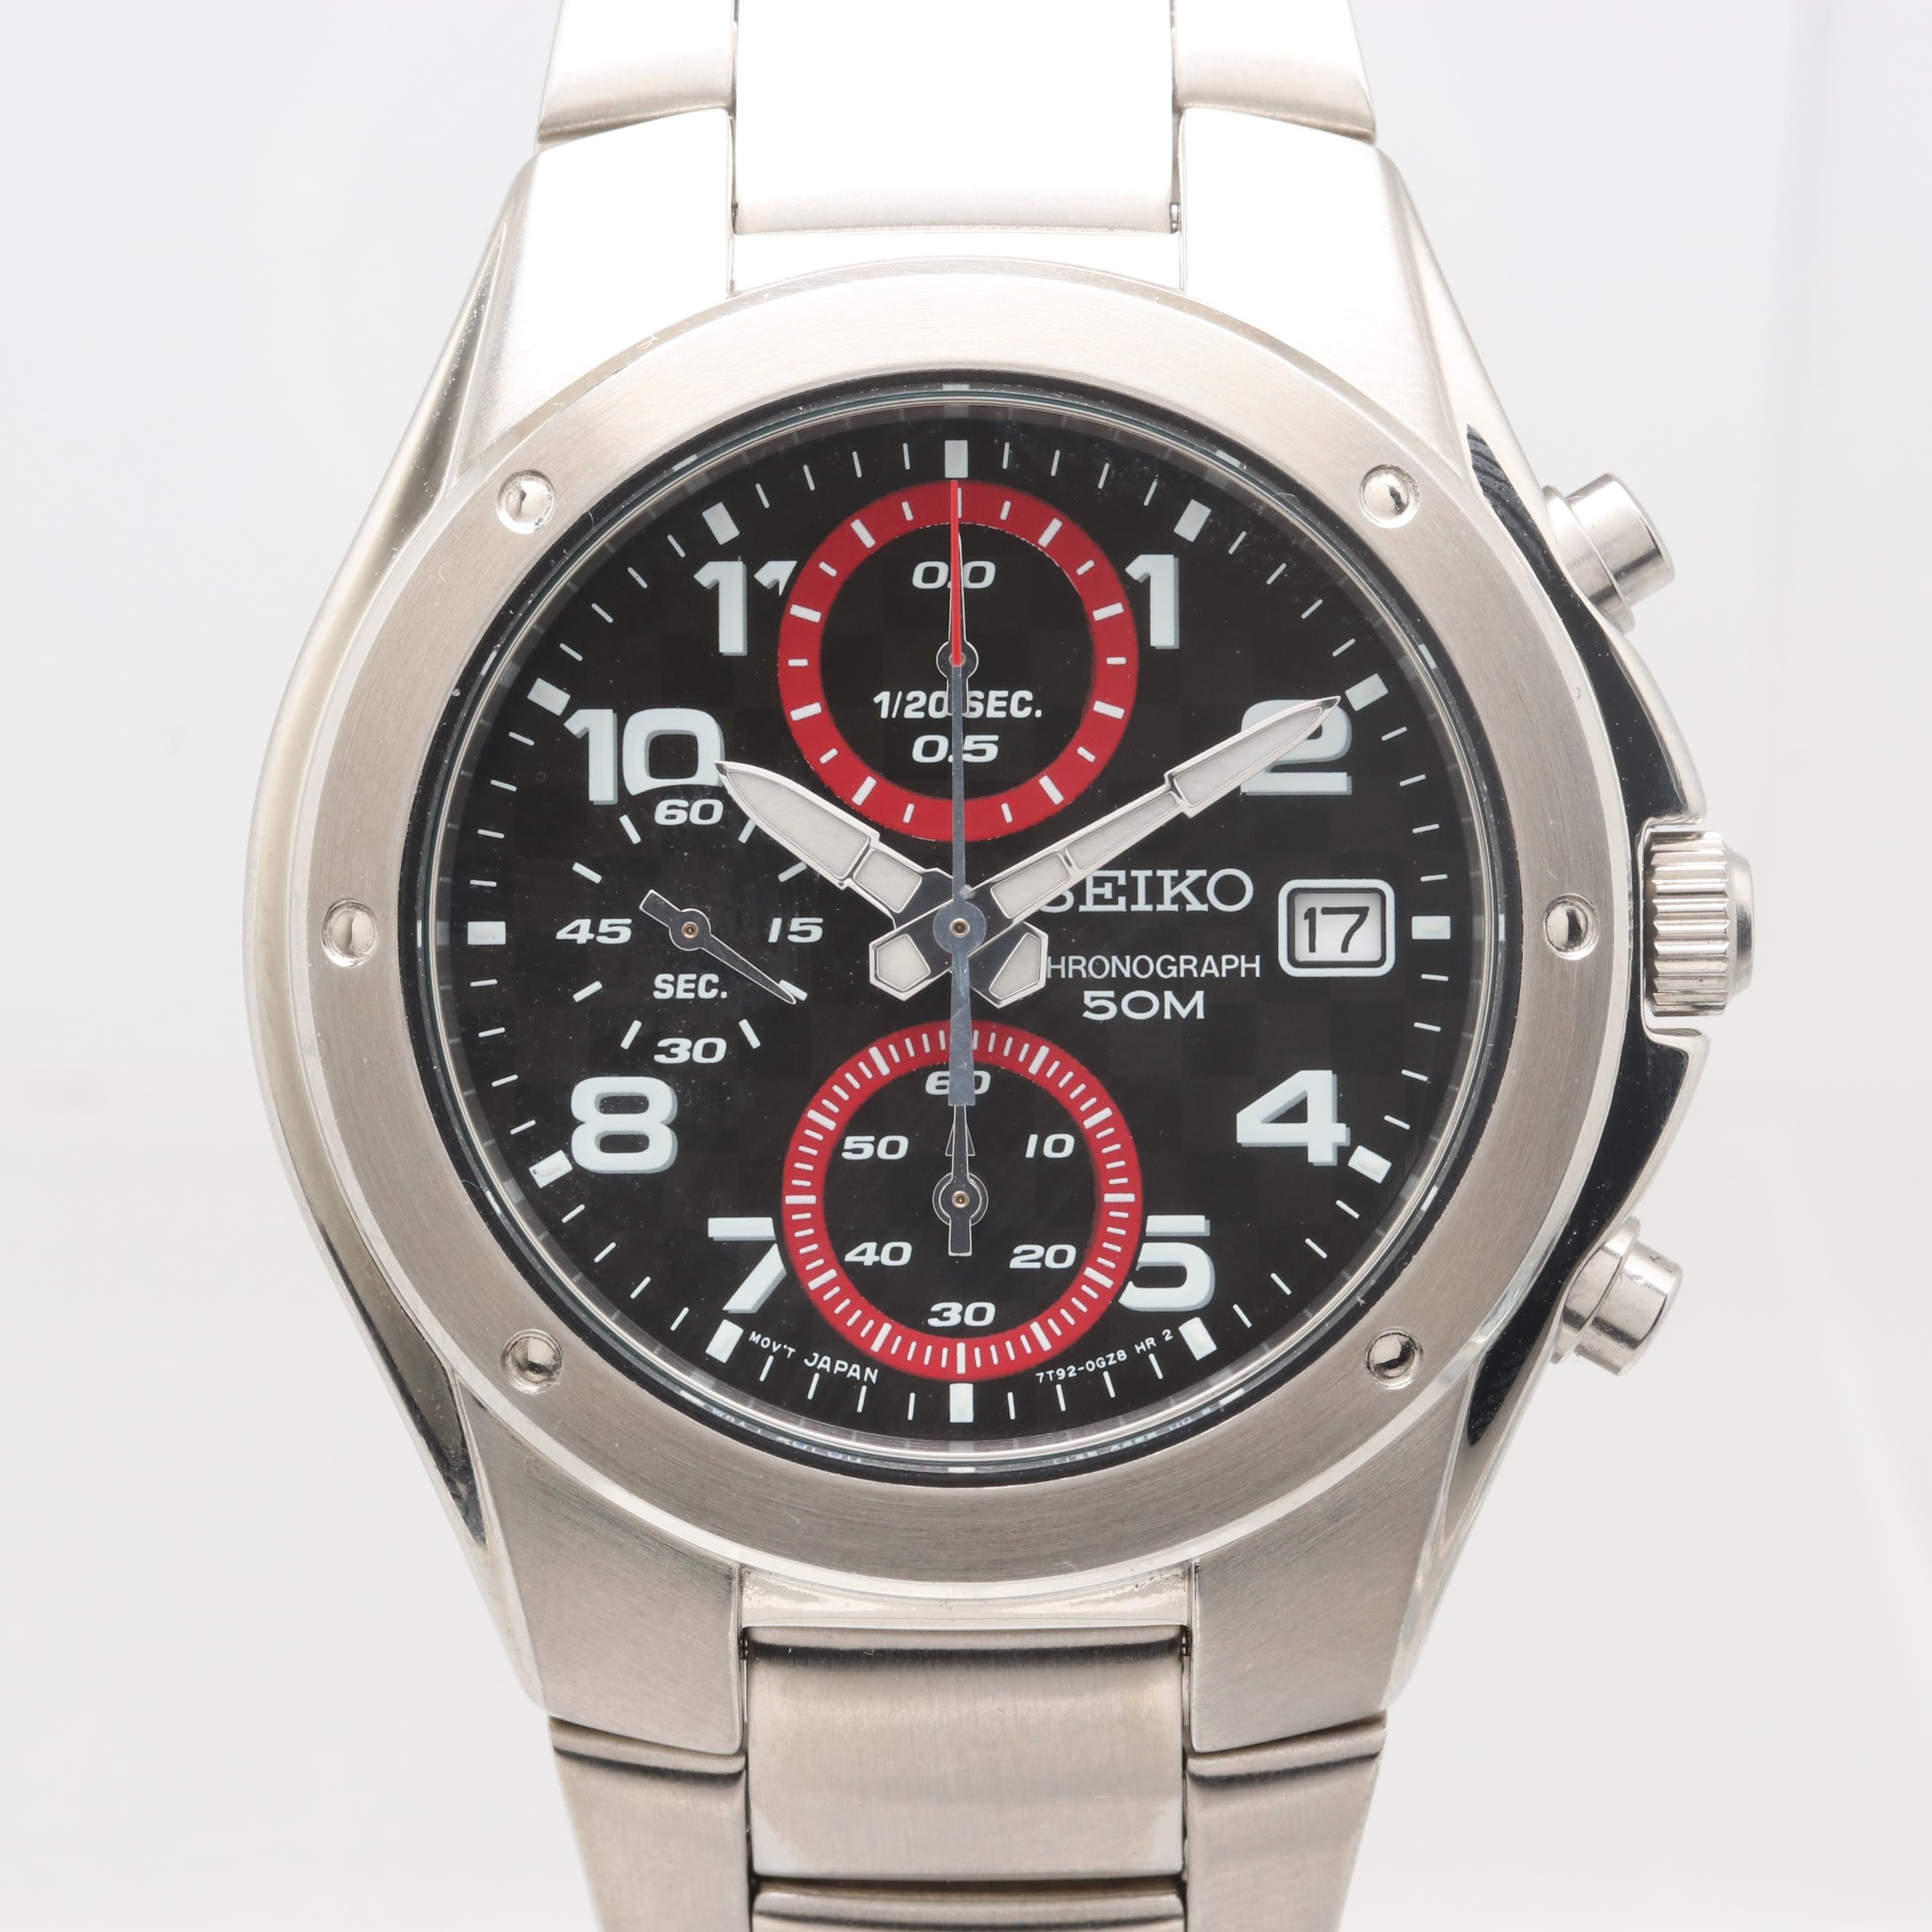 Seiko Stainless Steel Chronograph Wristwatch With Date Window